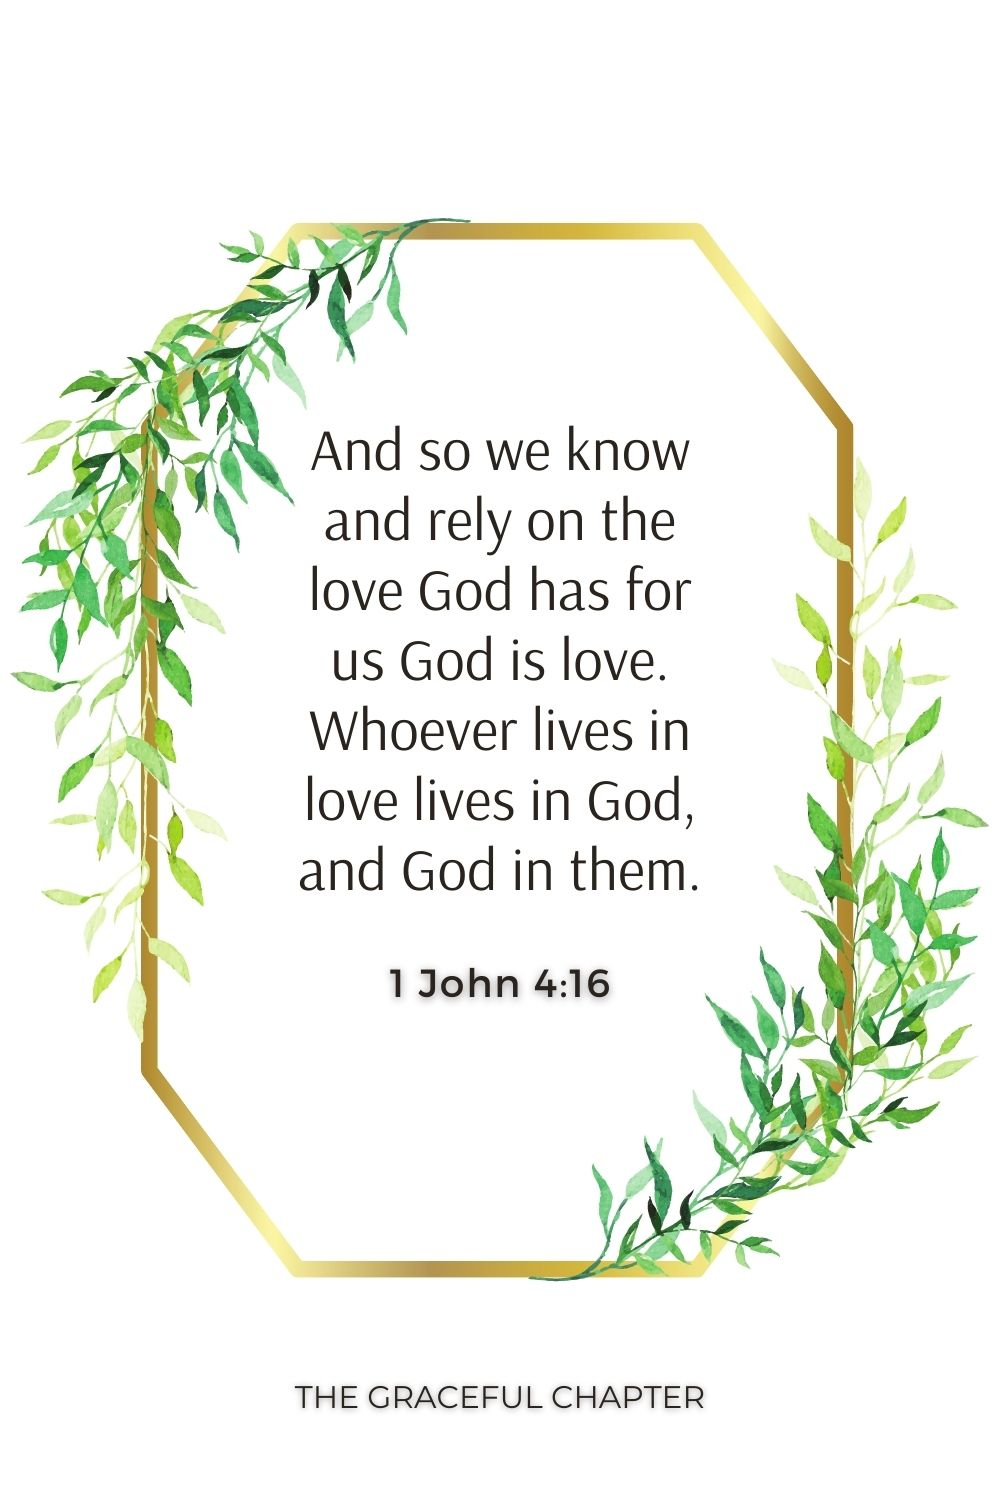 And so we know and rely on the love God has for us God is love. Whoever lives in love lives in God, and God in them. 1 John 4:16